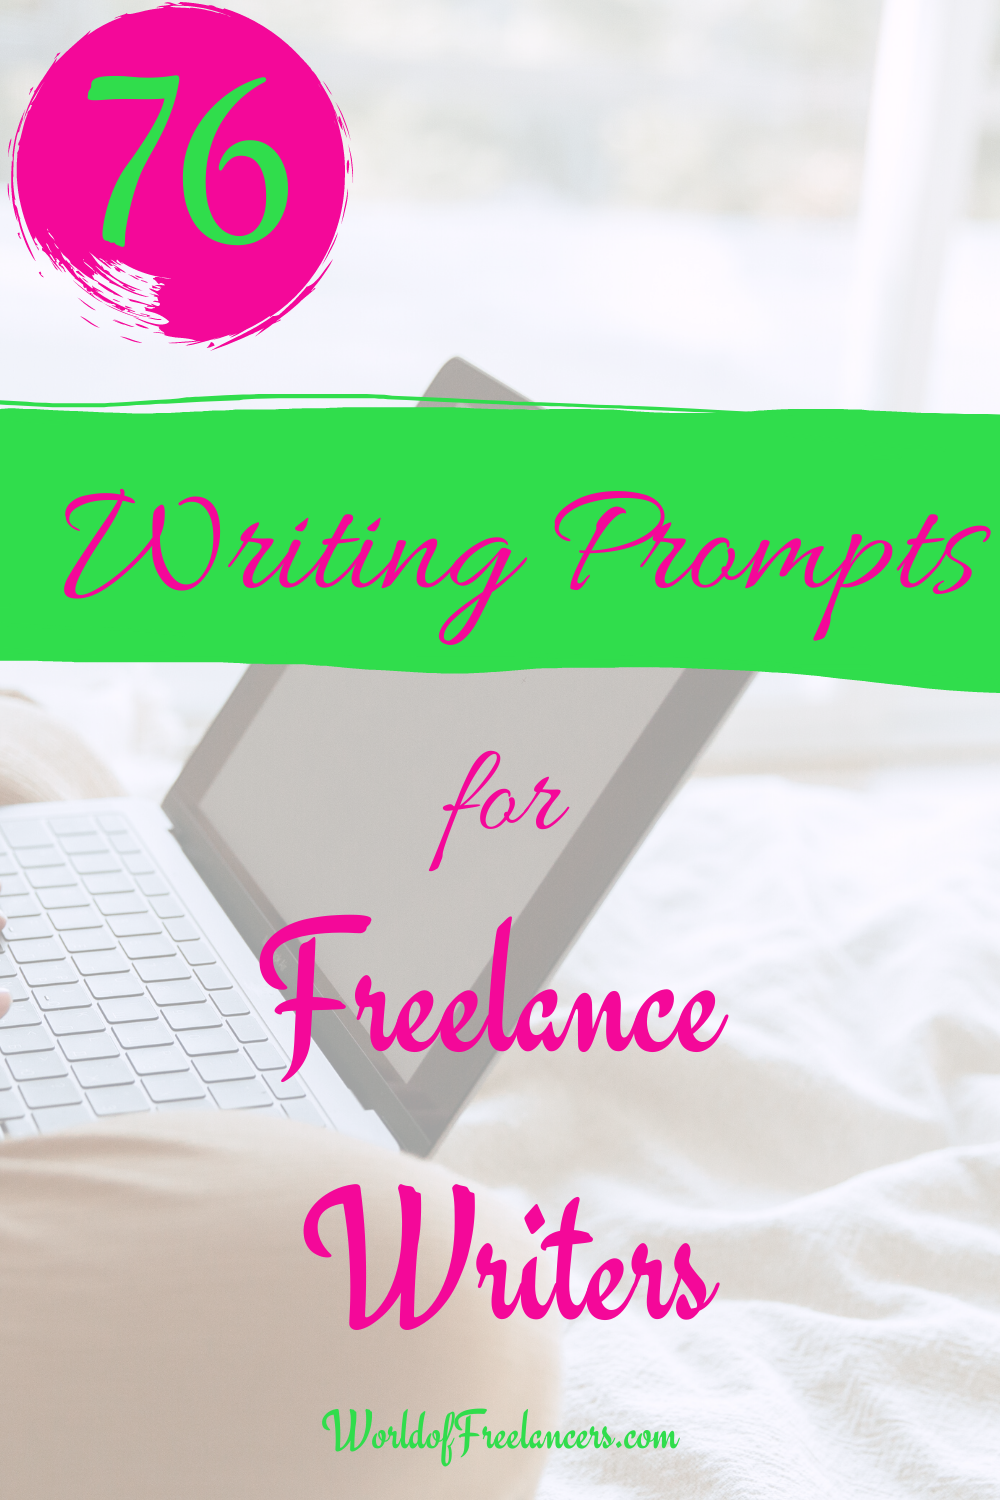 76 Writing Prompts for Freelance Writers - Pinterest image